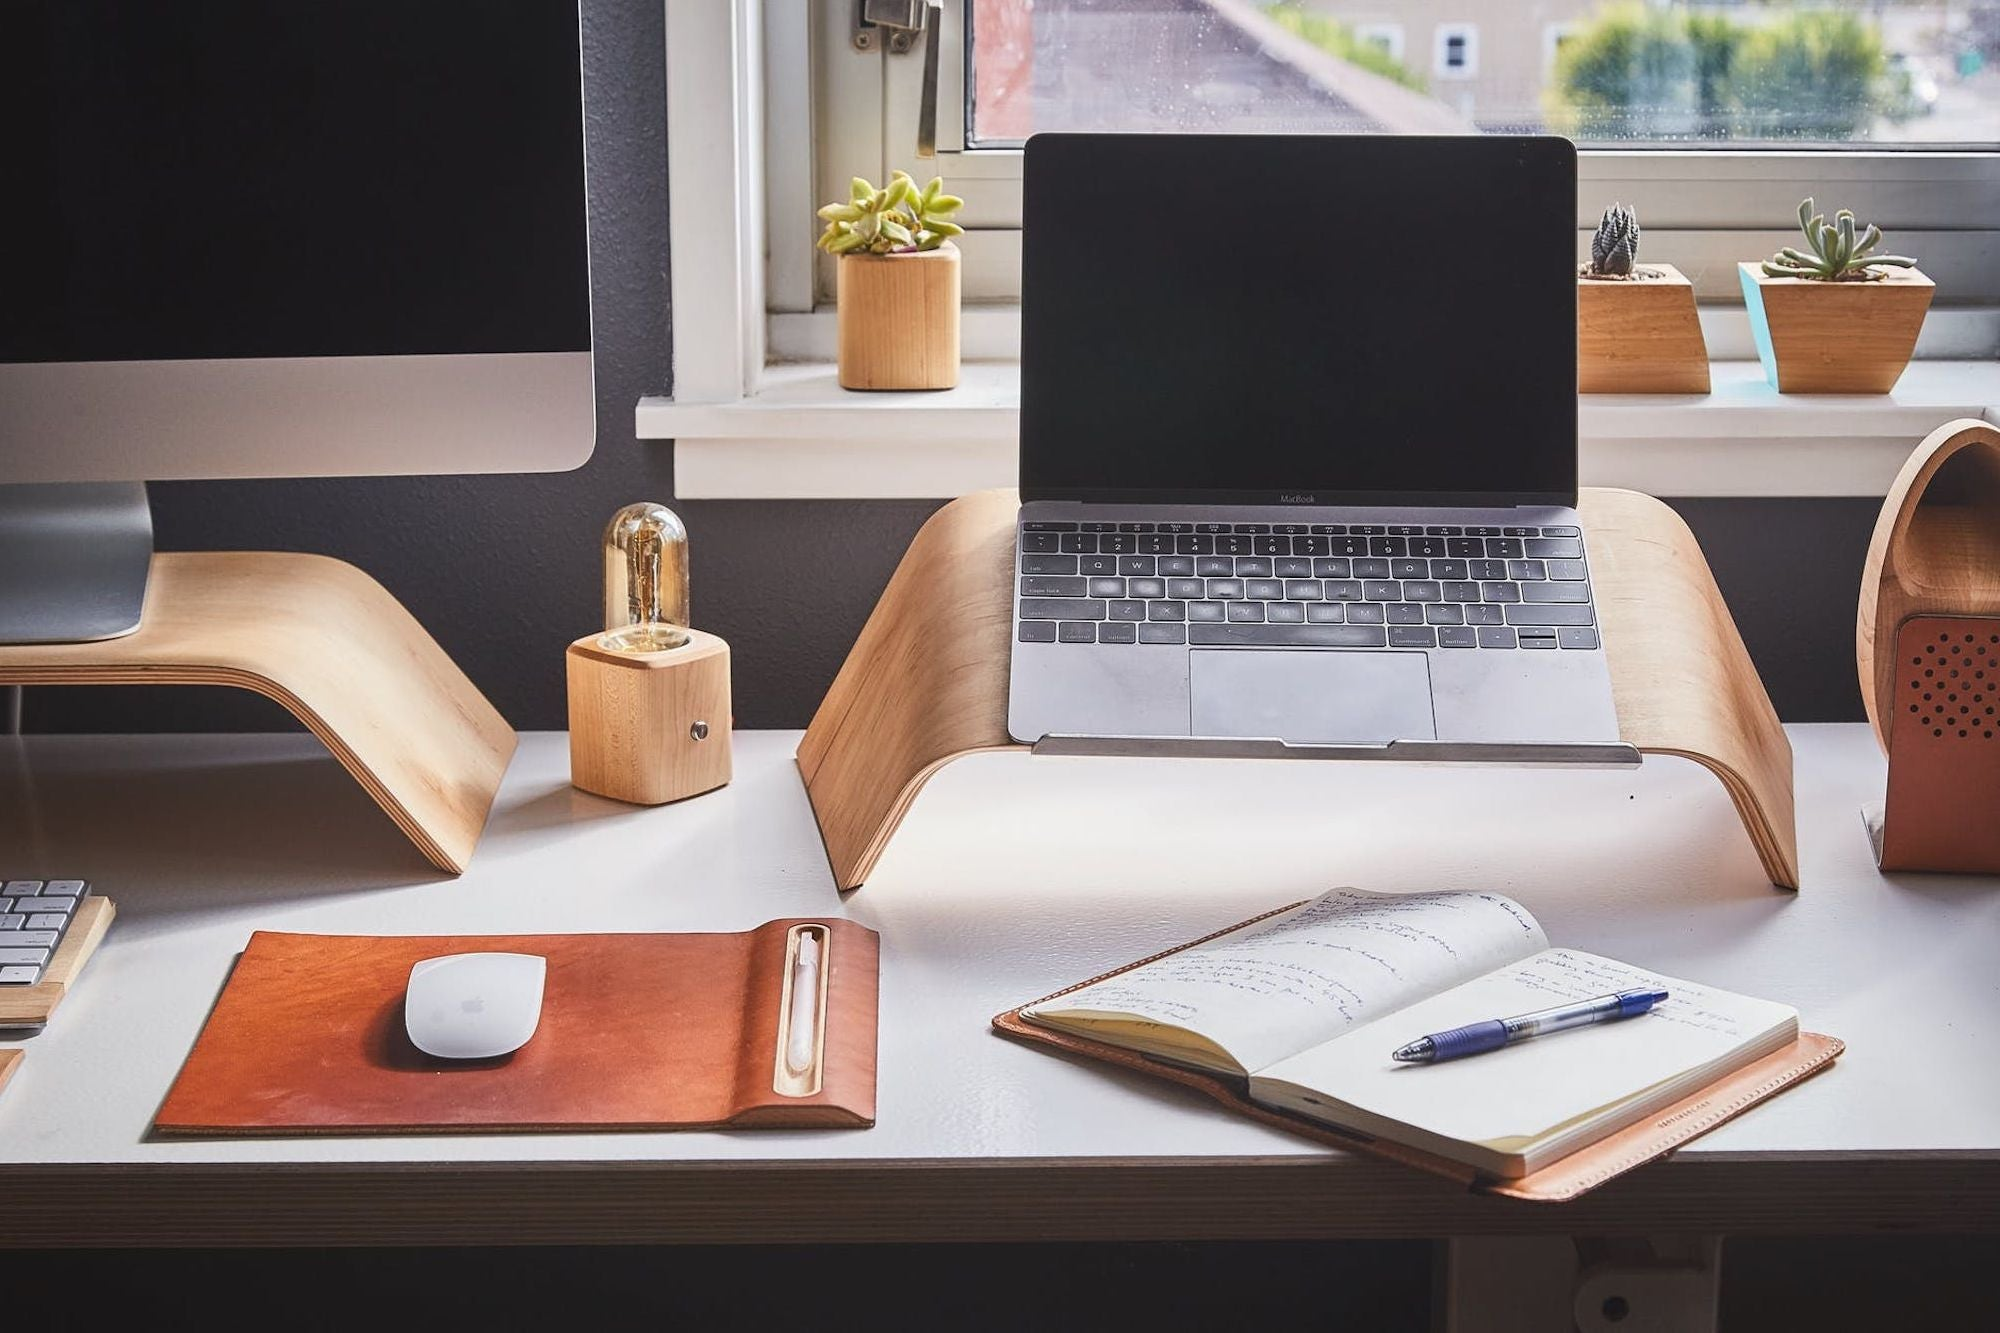 These Accessories Can Help You be More Productive While Working From Home